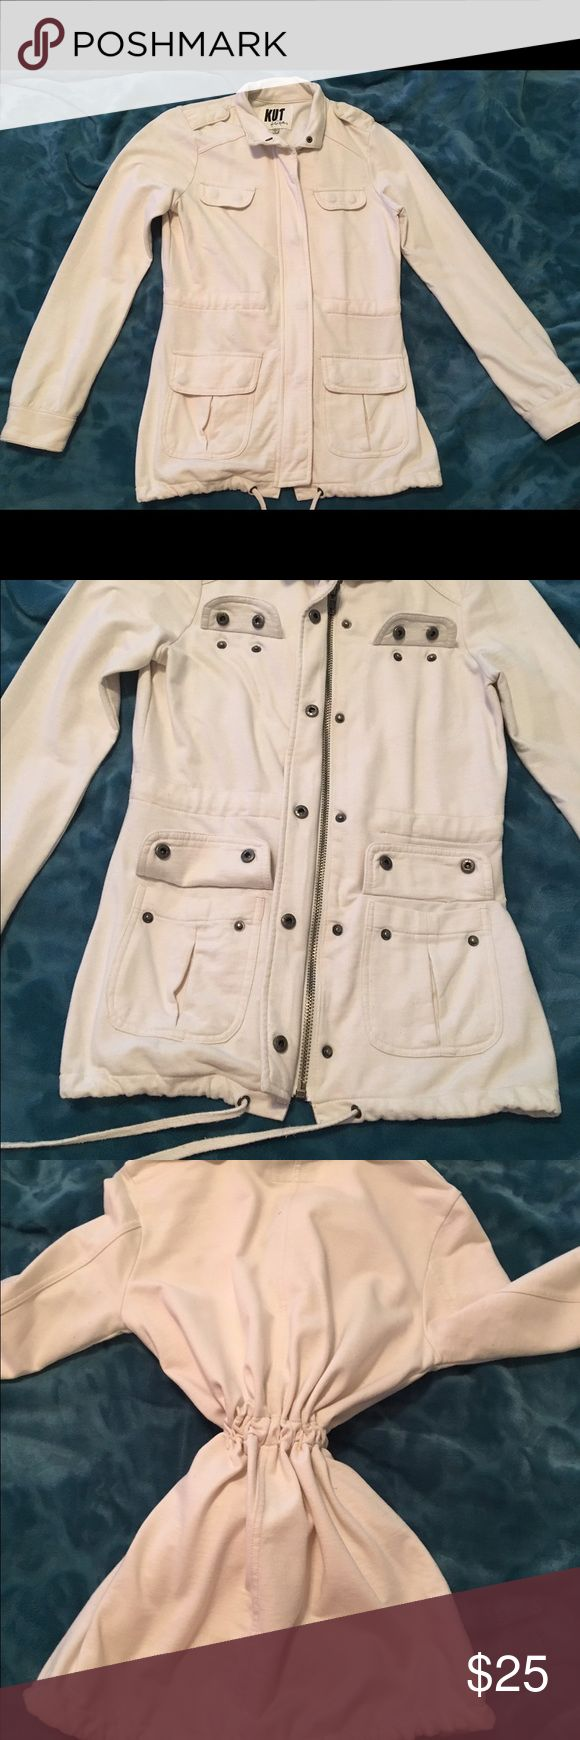 Cream zip up utility jacket with drawstring-women NWOT Women's cream zip up jacket with pockets and draw strings. Size XS. I'm a small and it fits me perfect. Jacket is soft, zips up, buttons up over the zipper, all pockets button down as well. Bottom and center have drawstrings to cinch and keep tight around body. Perfect for those cold winters. Can wear jacket open with cuffs pushed up and a scarf for a great fall look. Never worn but no tags. Perfect condition. #cream #xs #jacket #zipper…